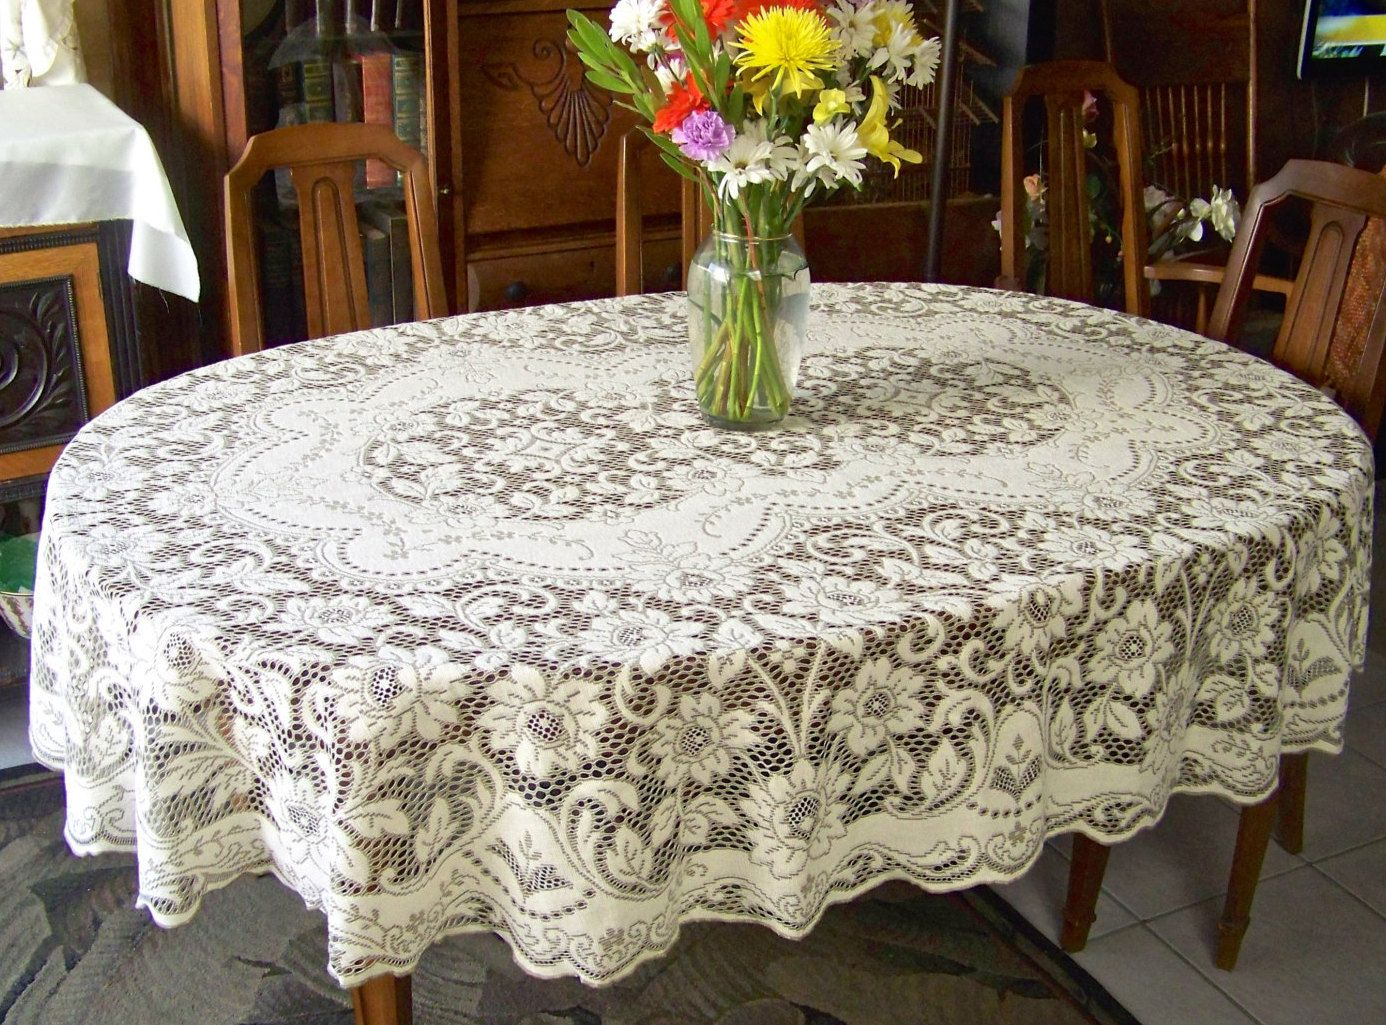 35 crochet lace tablecloth patterns